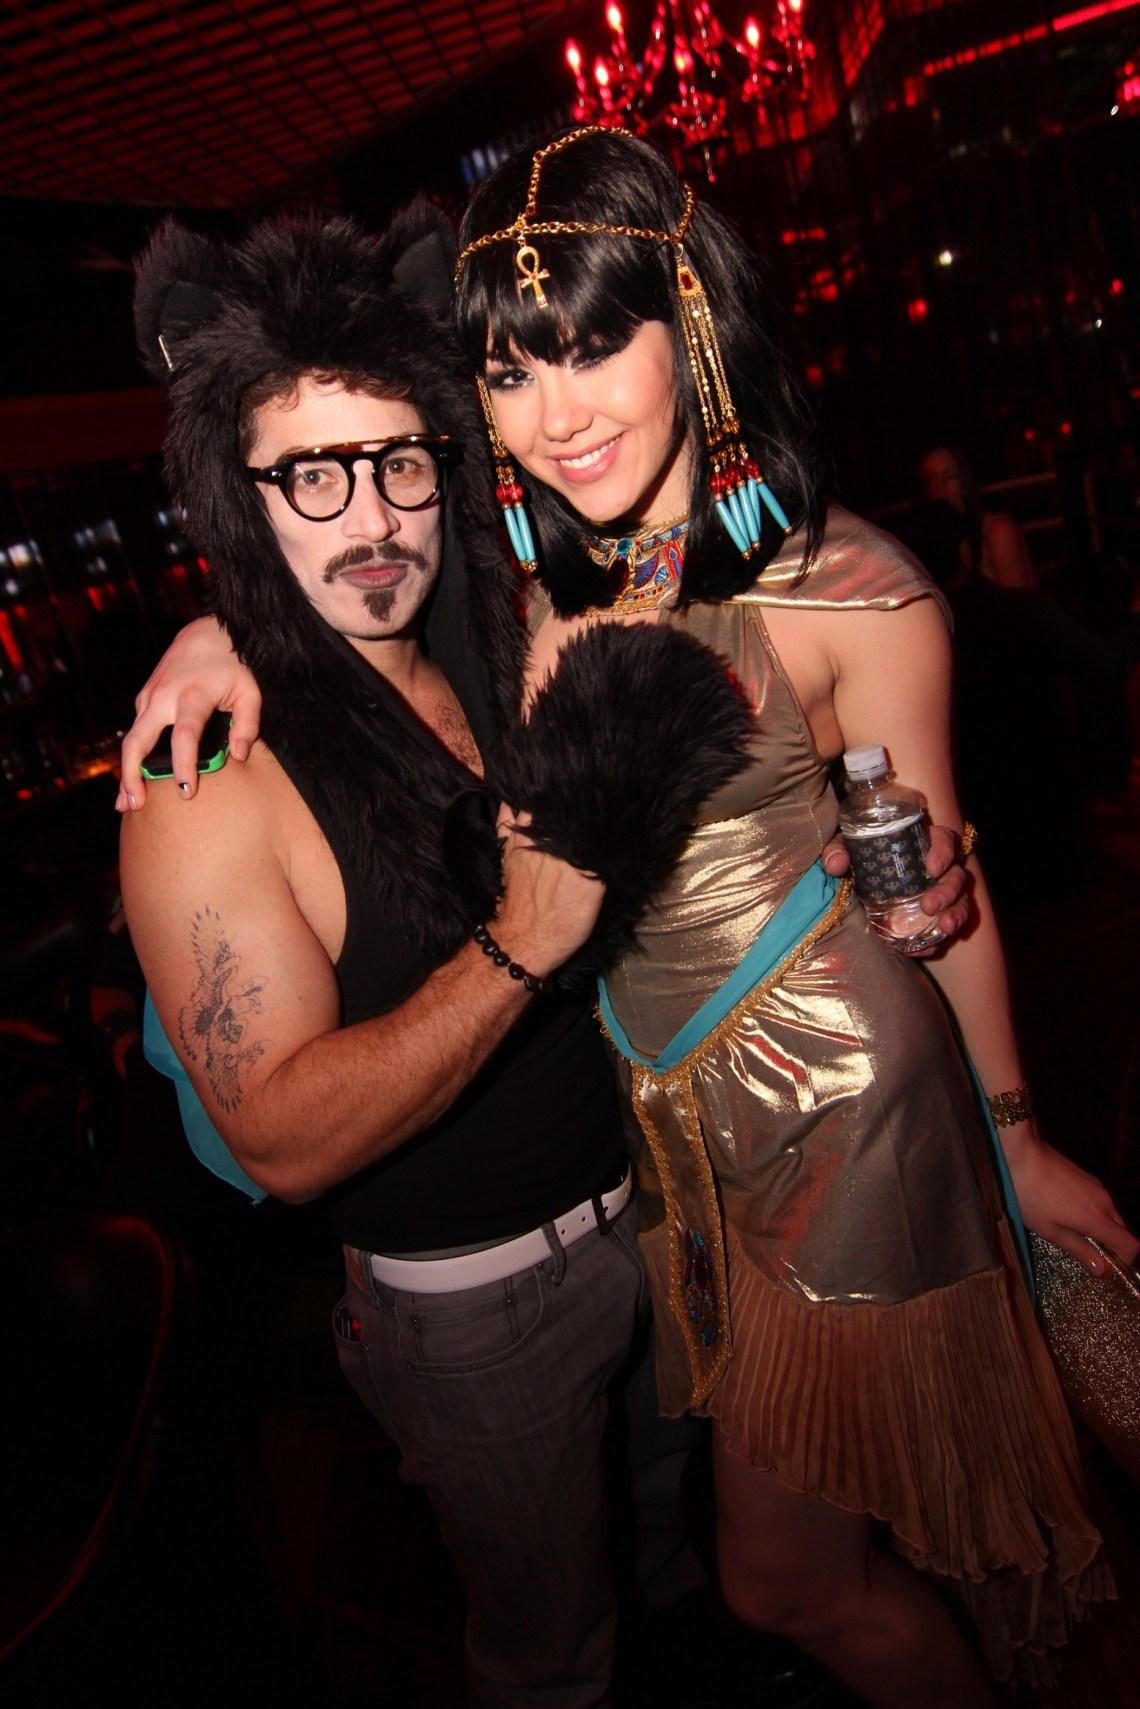 Mark Shunock and Claire Sinclair  inside Posh Boutique Nightclub at Crazy Horse III